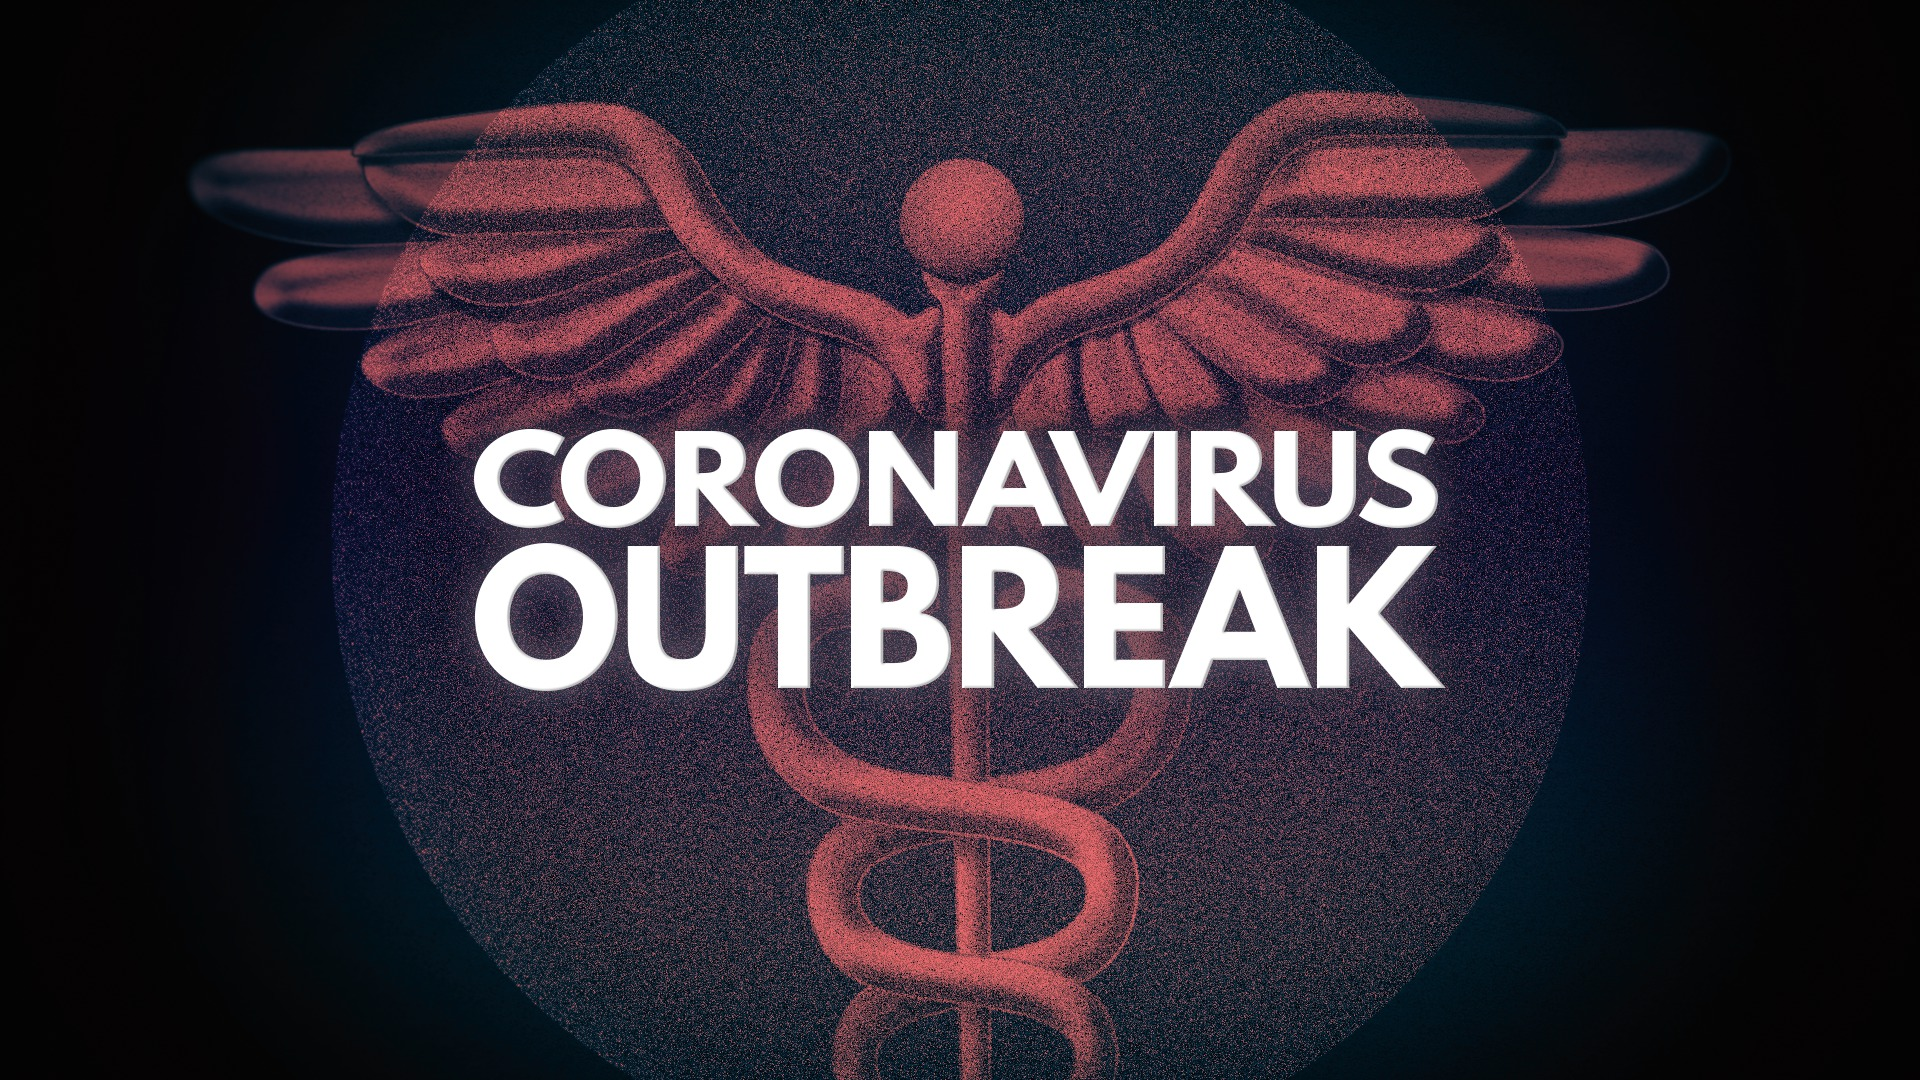 Looking at how the coronavirus outbreak is affecting the financial markets